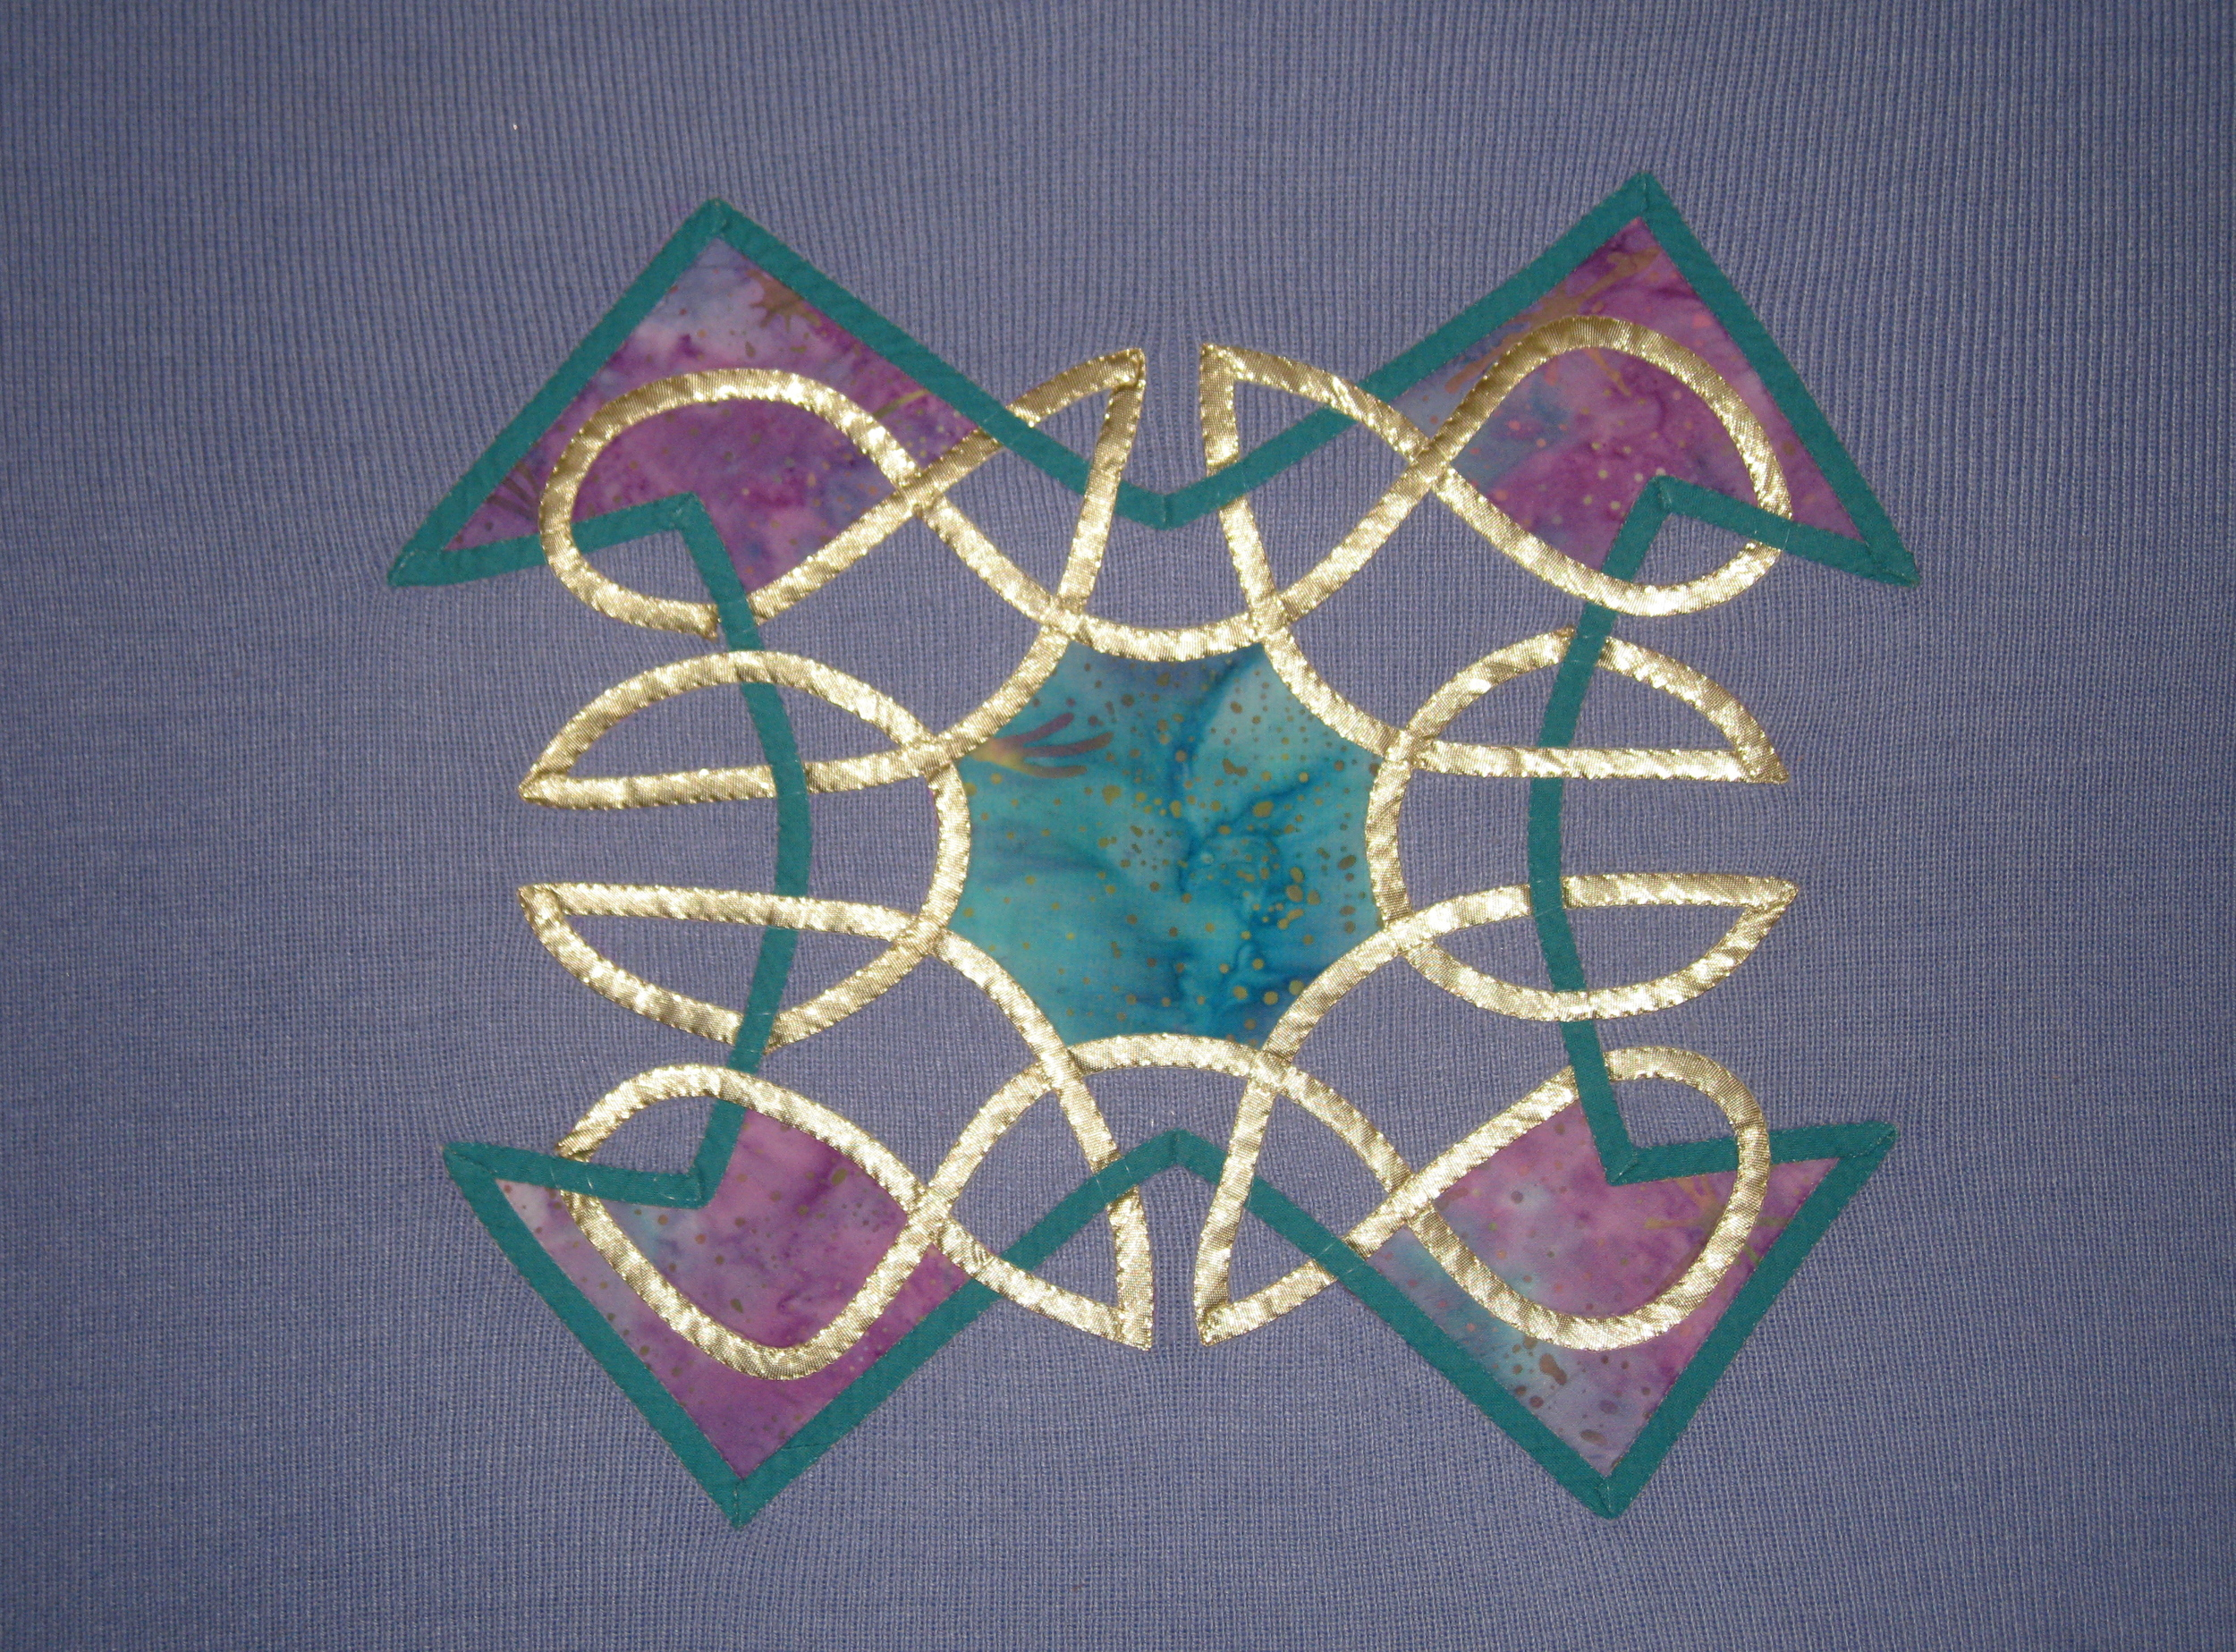 Sew Easy Celtic- book -quilt design and applique by Angela madden